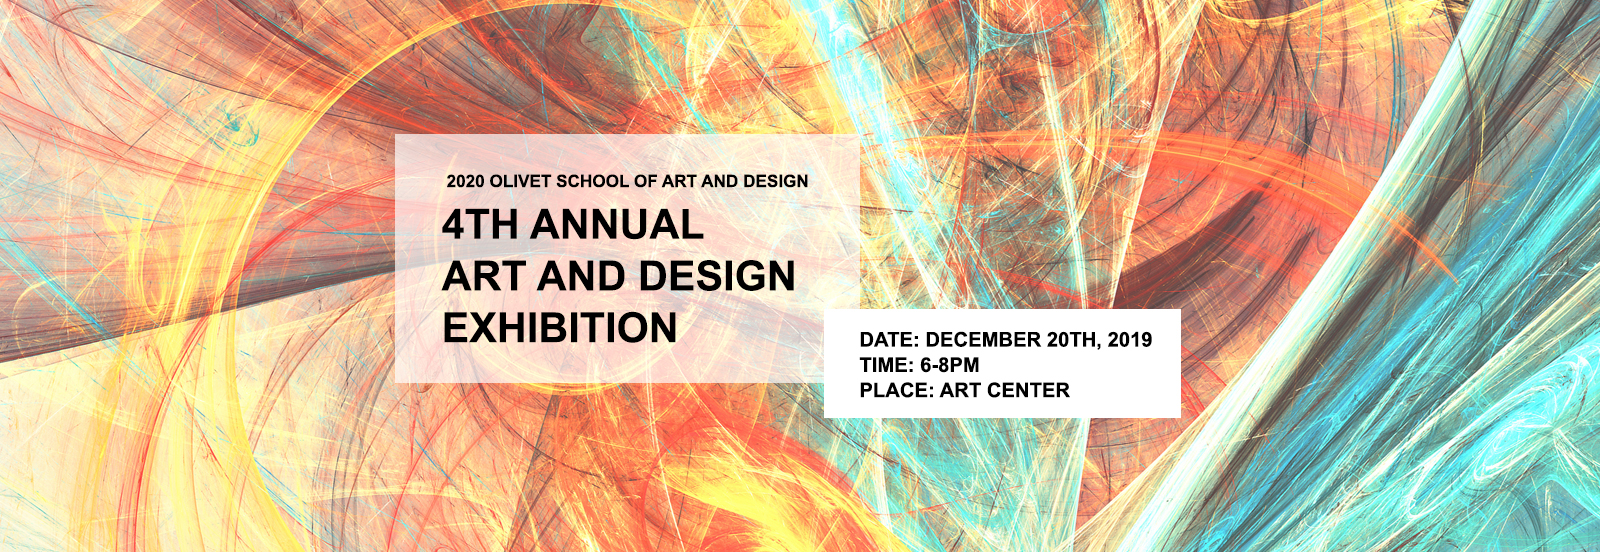 2020 Olivet School of Art and Design 4th Annual Art and Design Exhibition